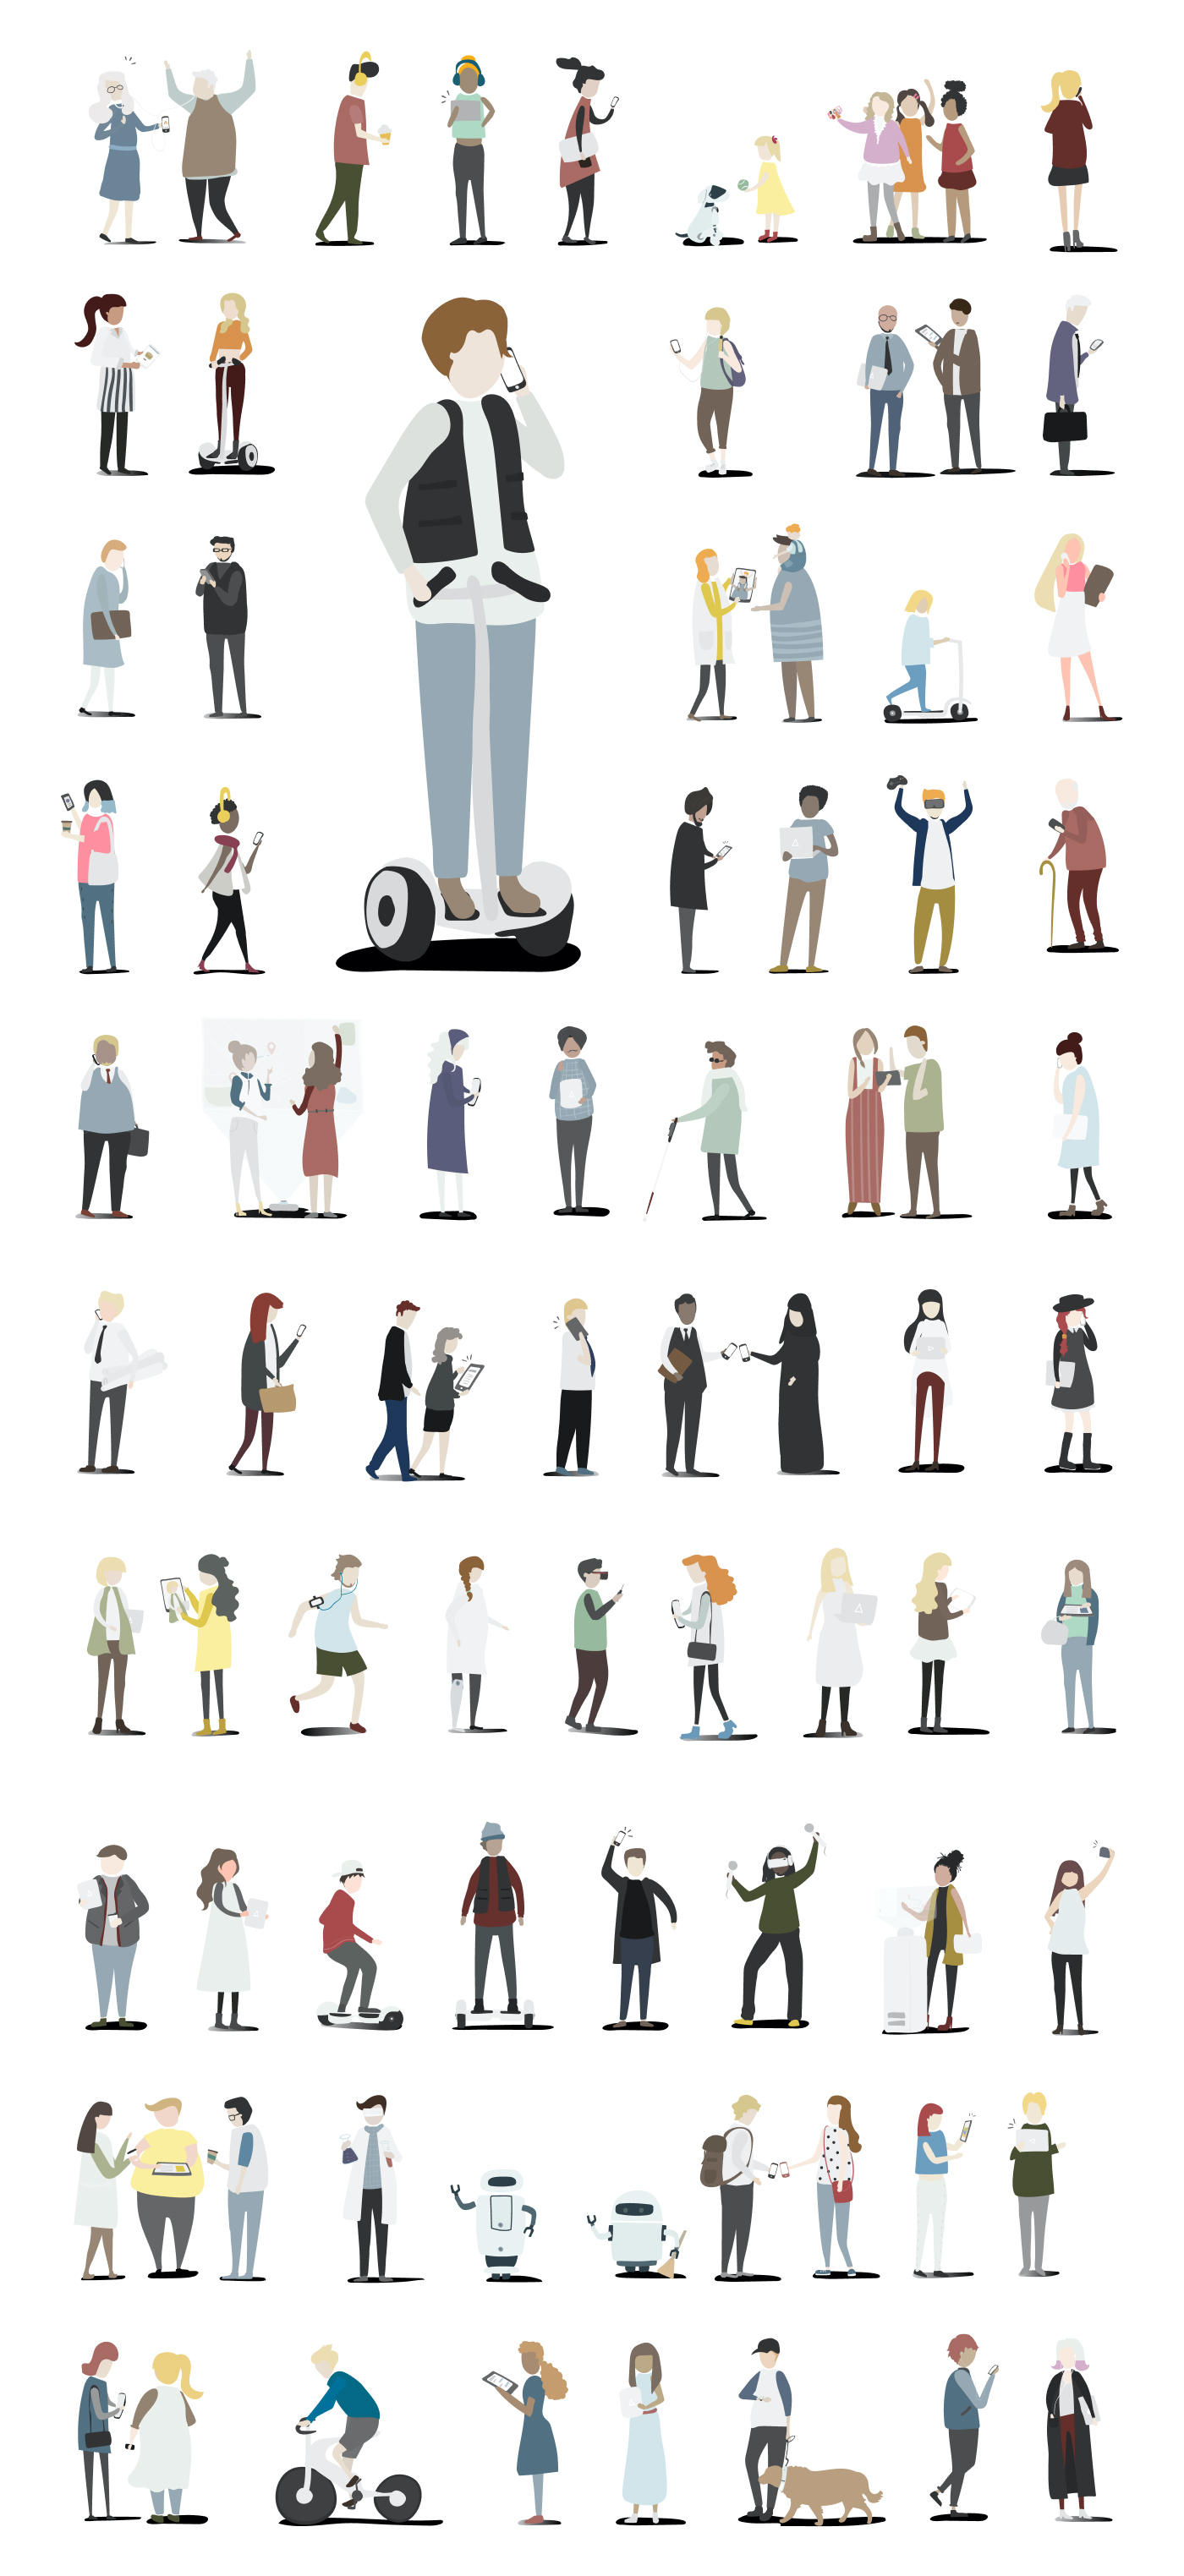 Vector Character Illustrations for Figma - A good collection of 78 illustrations showing people in action - dancing, communicating, driving, taking selfies, etc. It's always good to have illustrations at hand and with this nice customizable resource, you can include these characters in various projects.